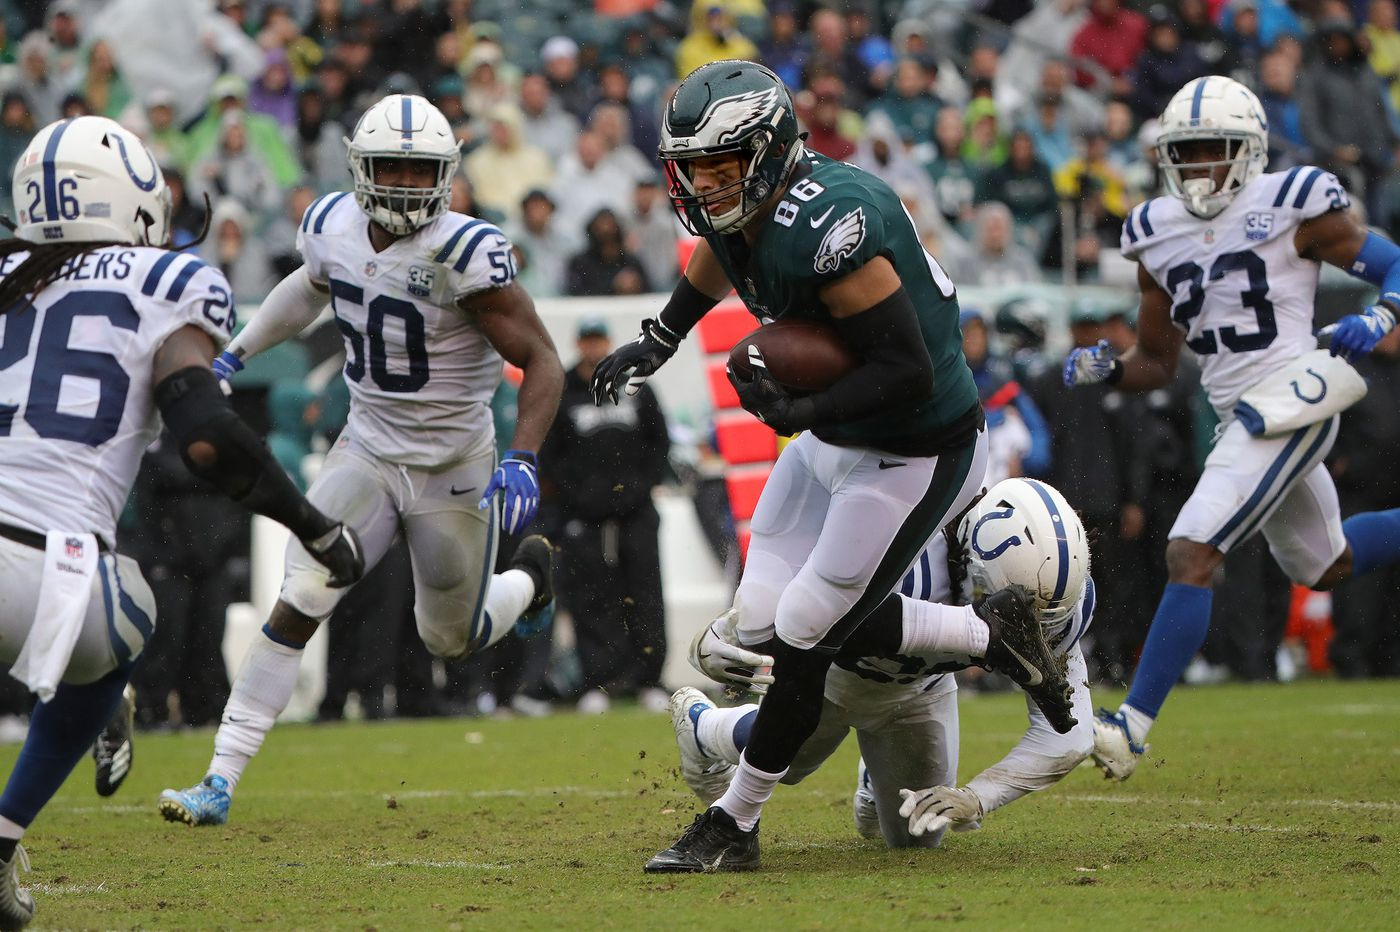 Eagles exude confidence on both sides of the ball in character win over Colts | David Murphy